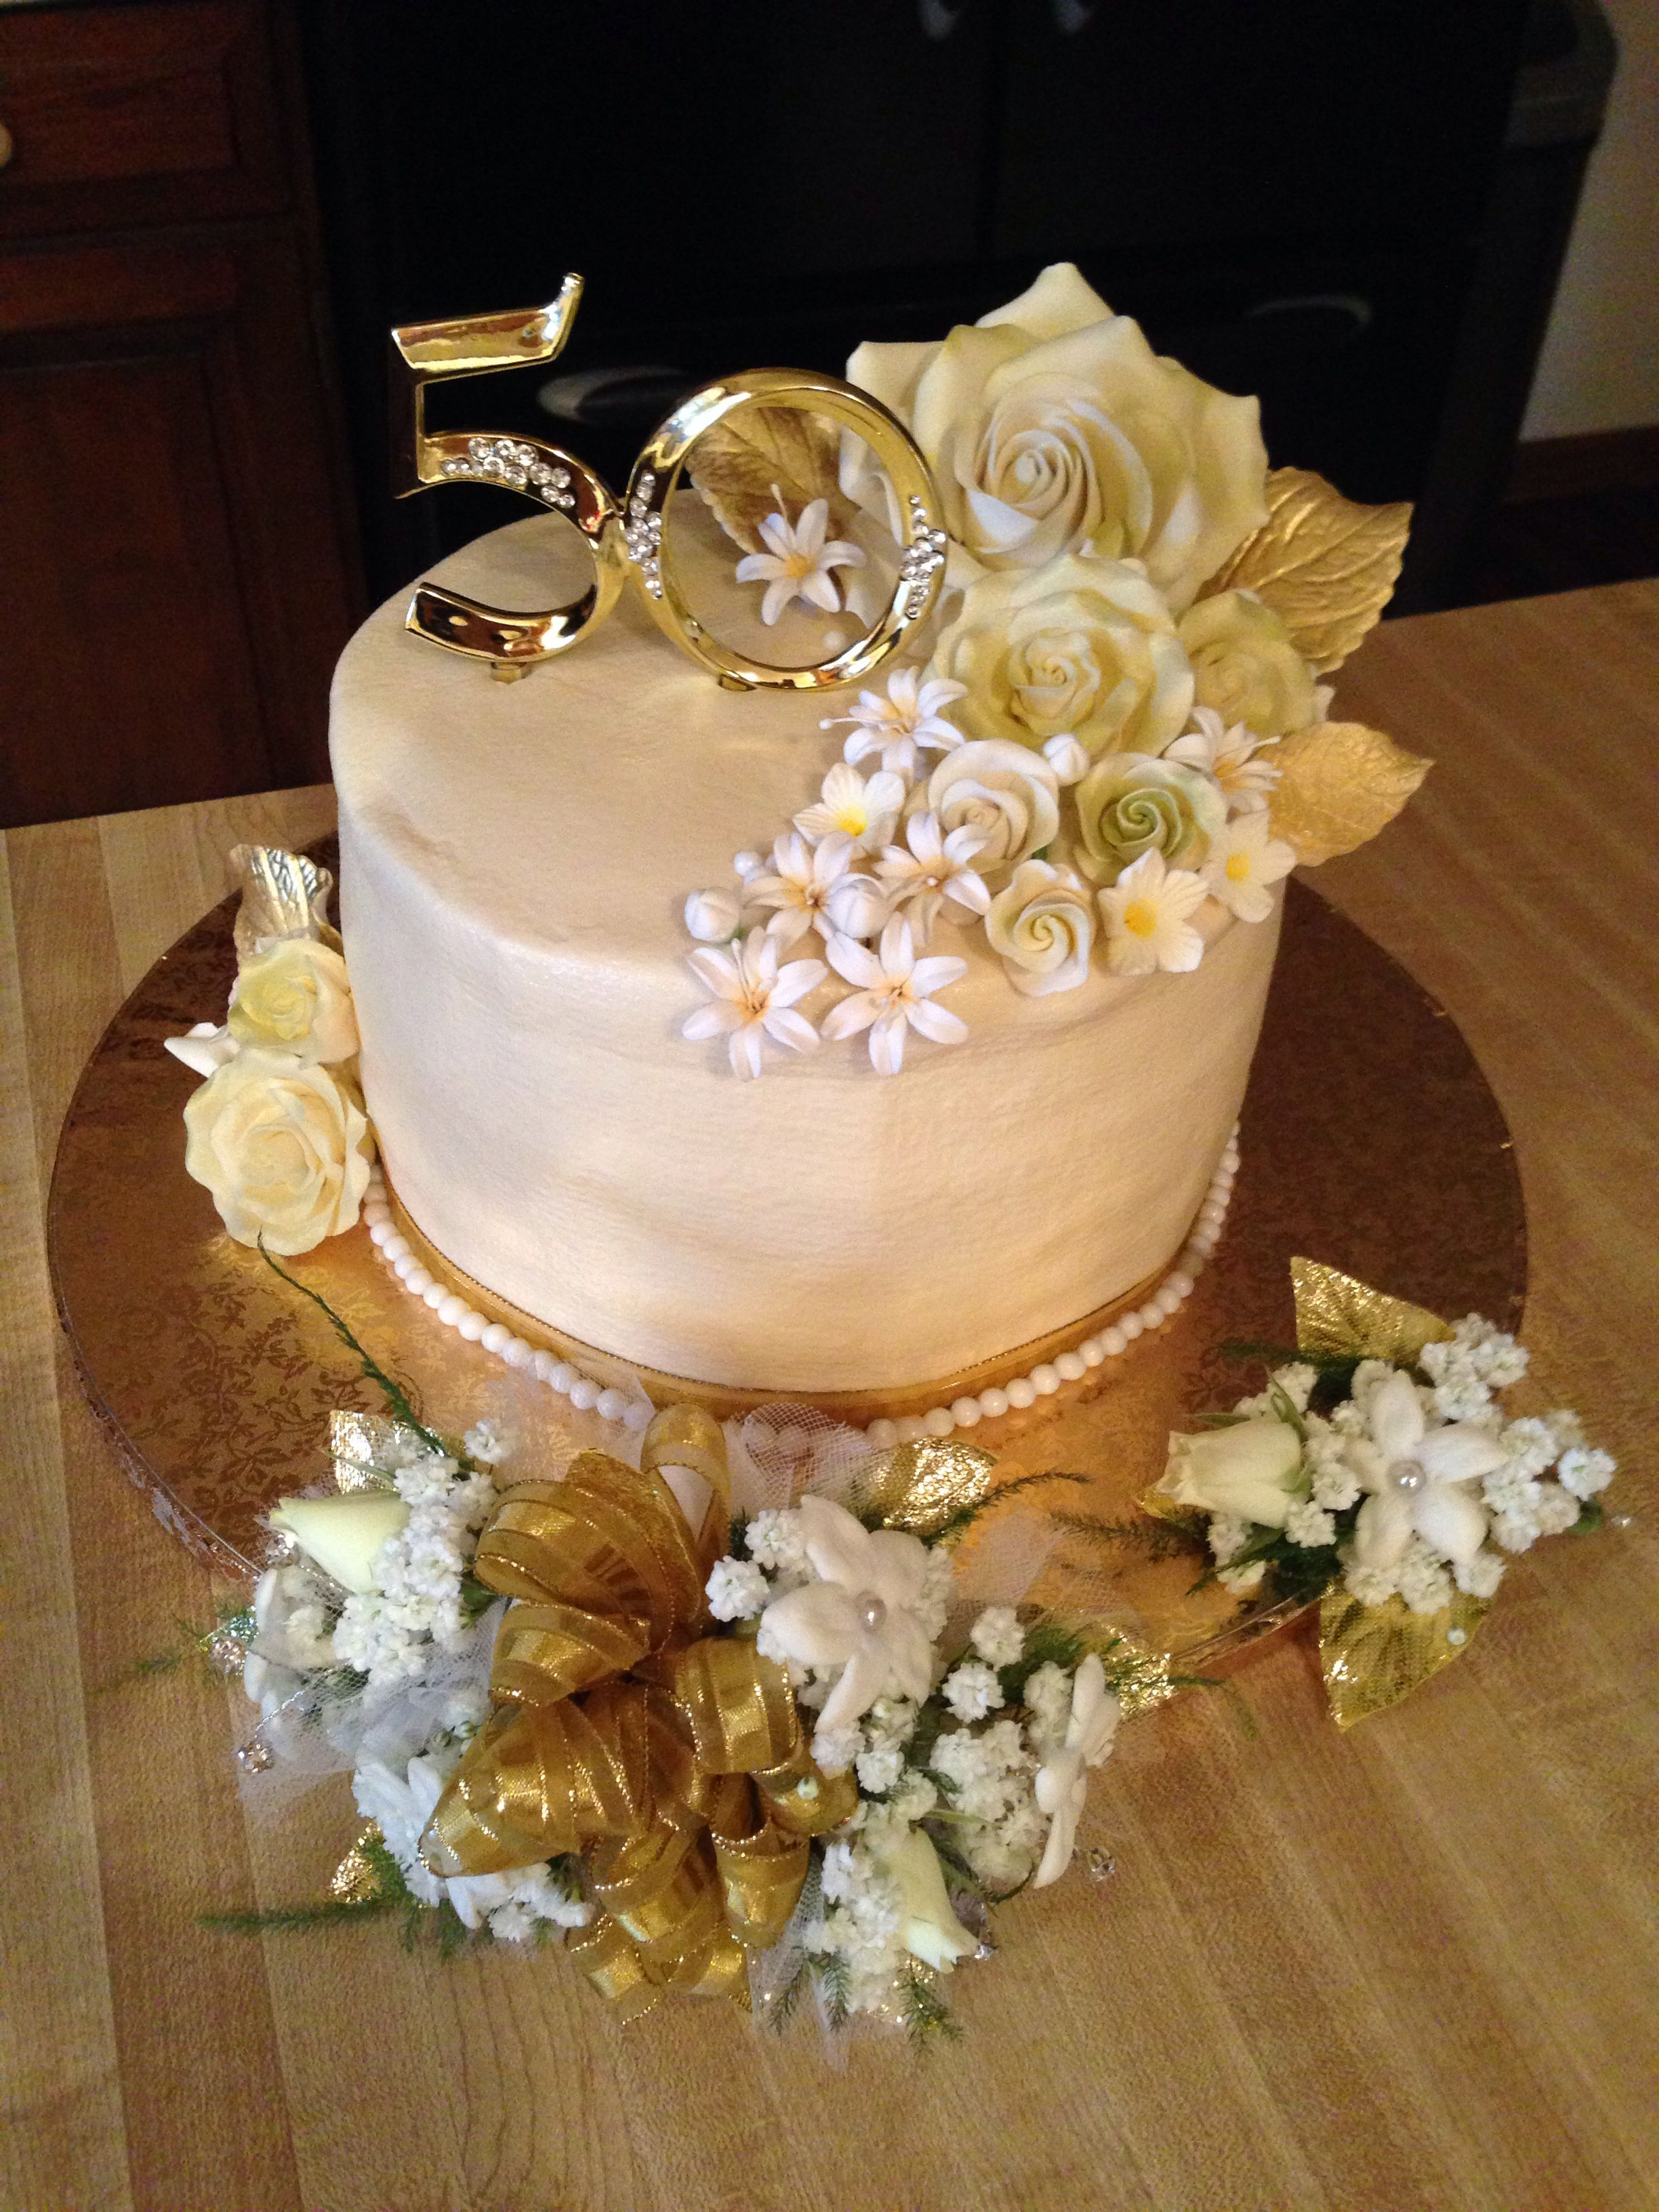 50th anniversary cake and flowers food recipes pinterest 50th anniversary 50th. Black Bedroom Furniture Sets. Home Design Ideas